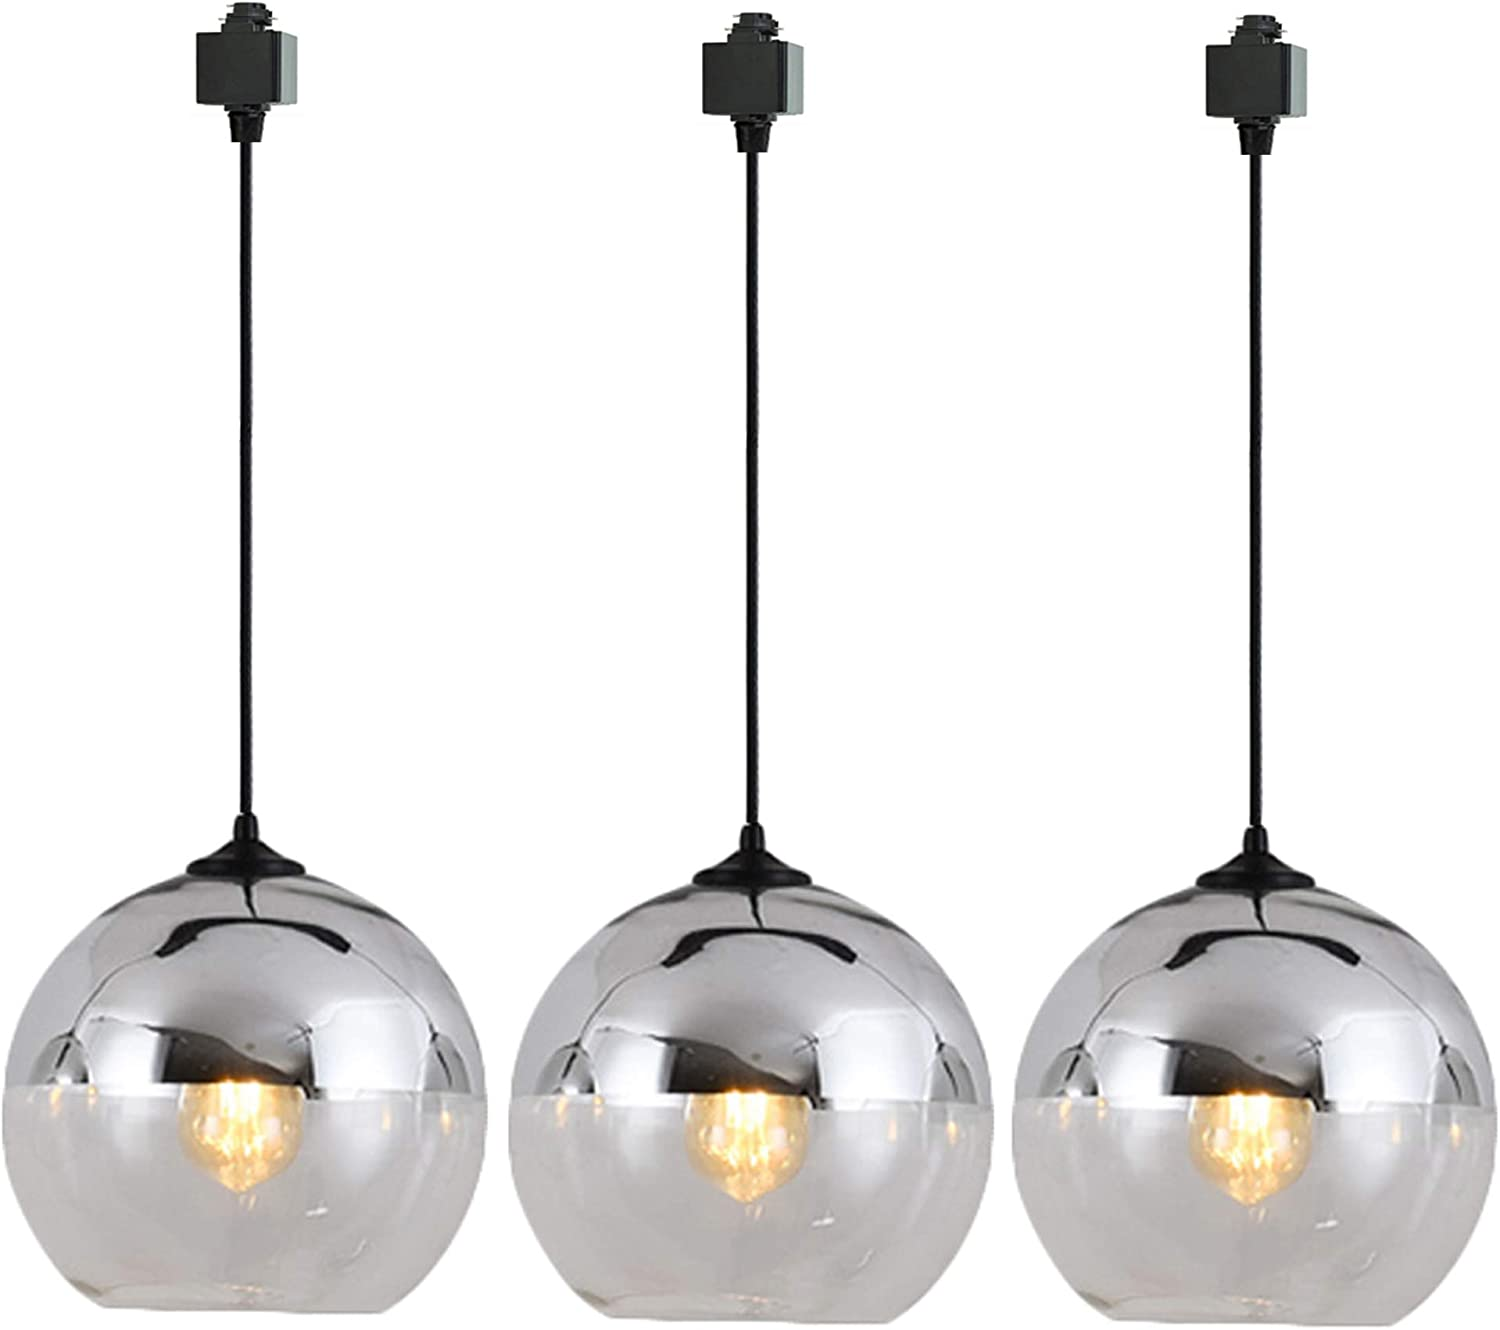 STGLIGHTING H Track Pendant Light Globe Vintage with Glass Shade Overseas parallel import regular item Selling and selling